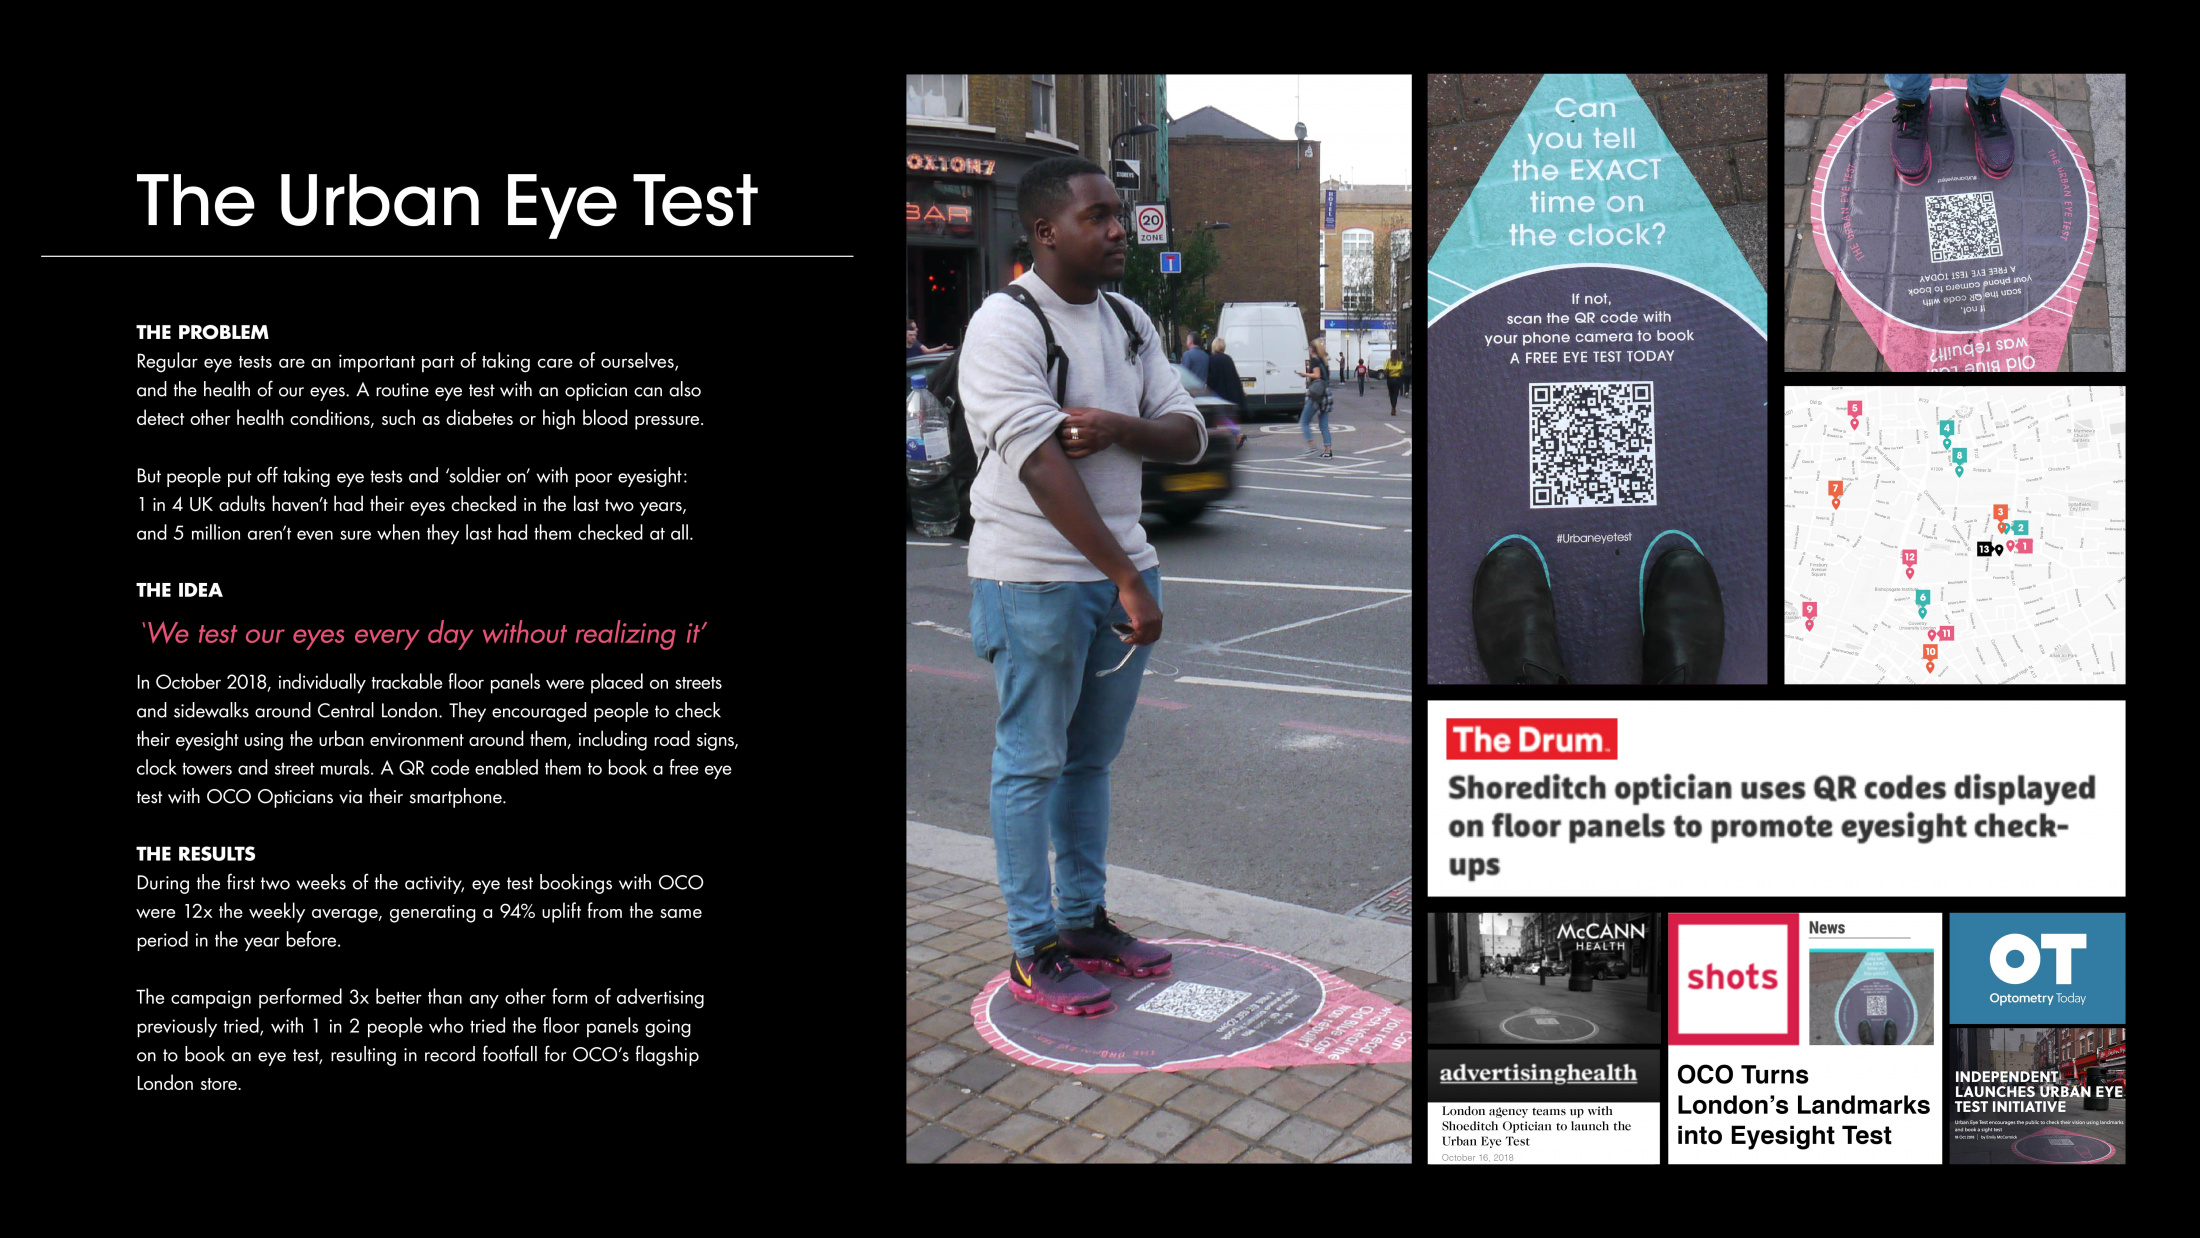 The Urban Eye Test Thumbnail